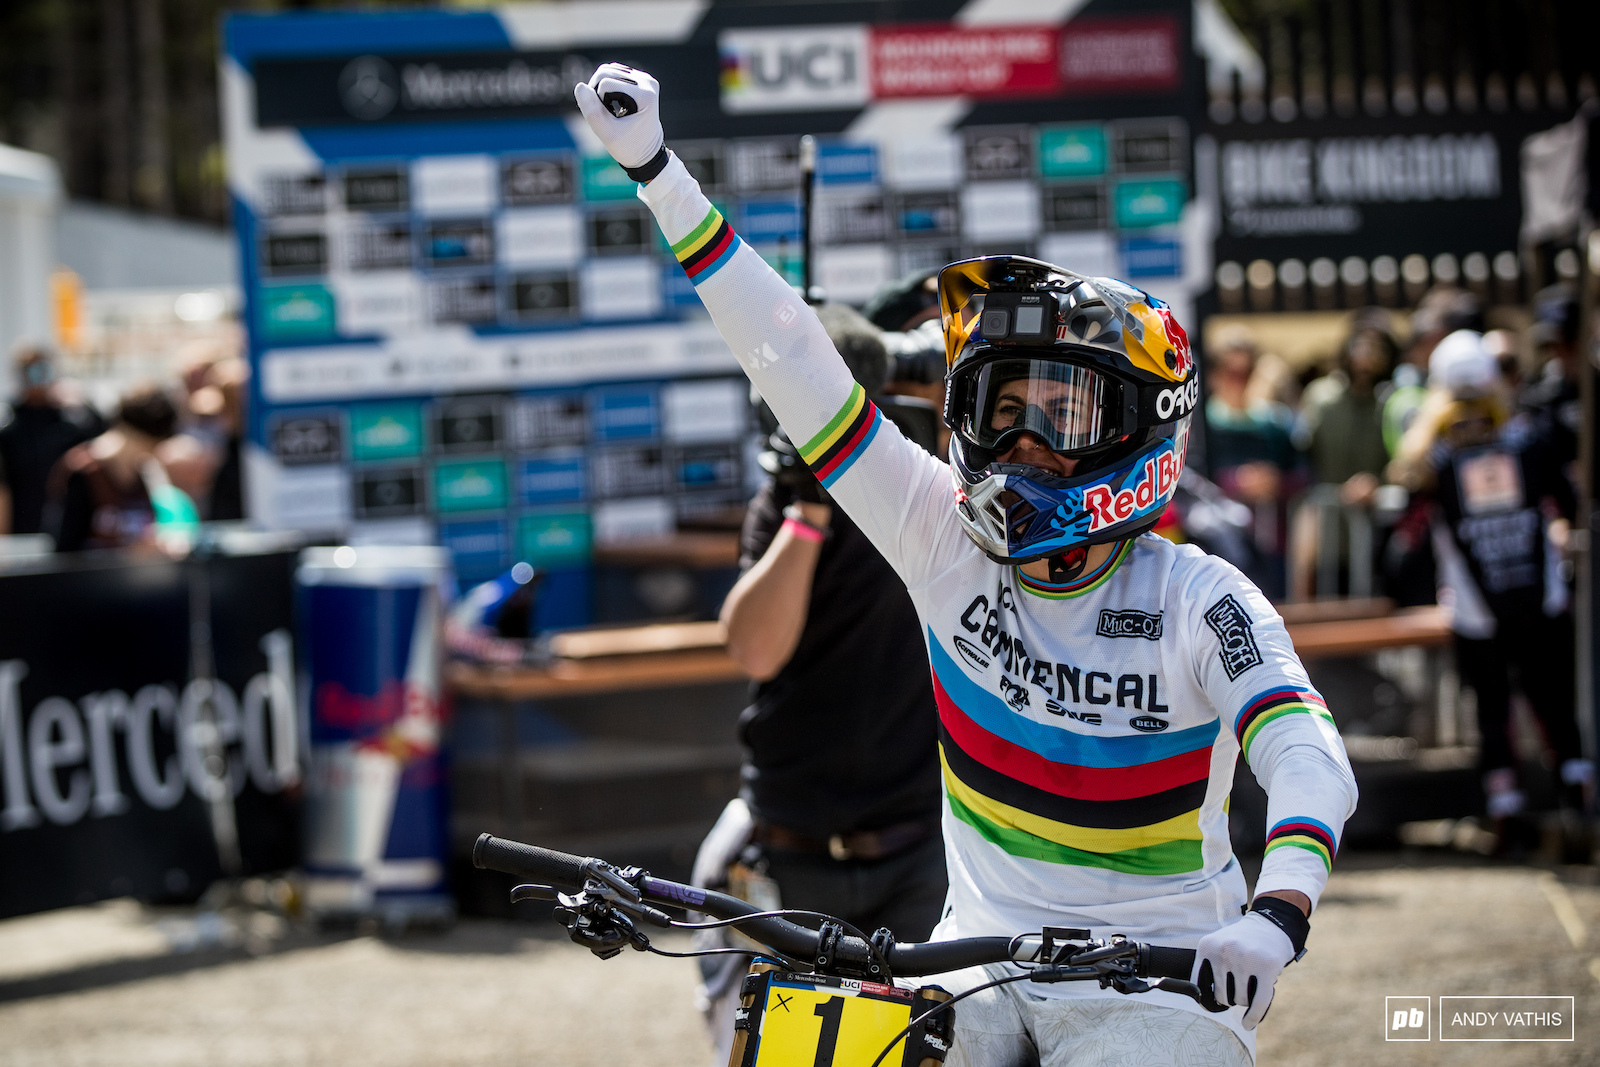 What a win for Myriam Nicole. Untouchable.